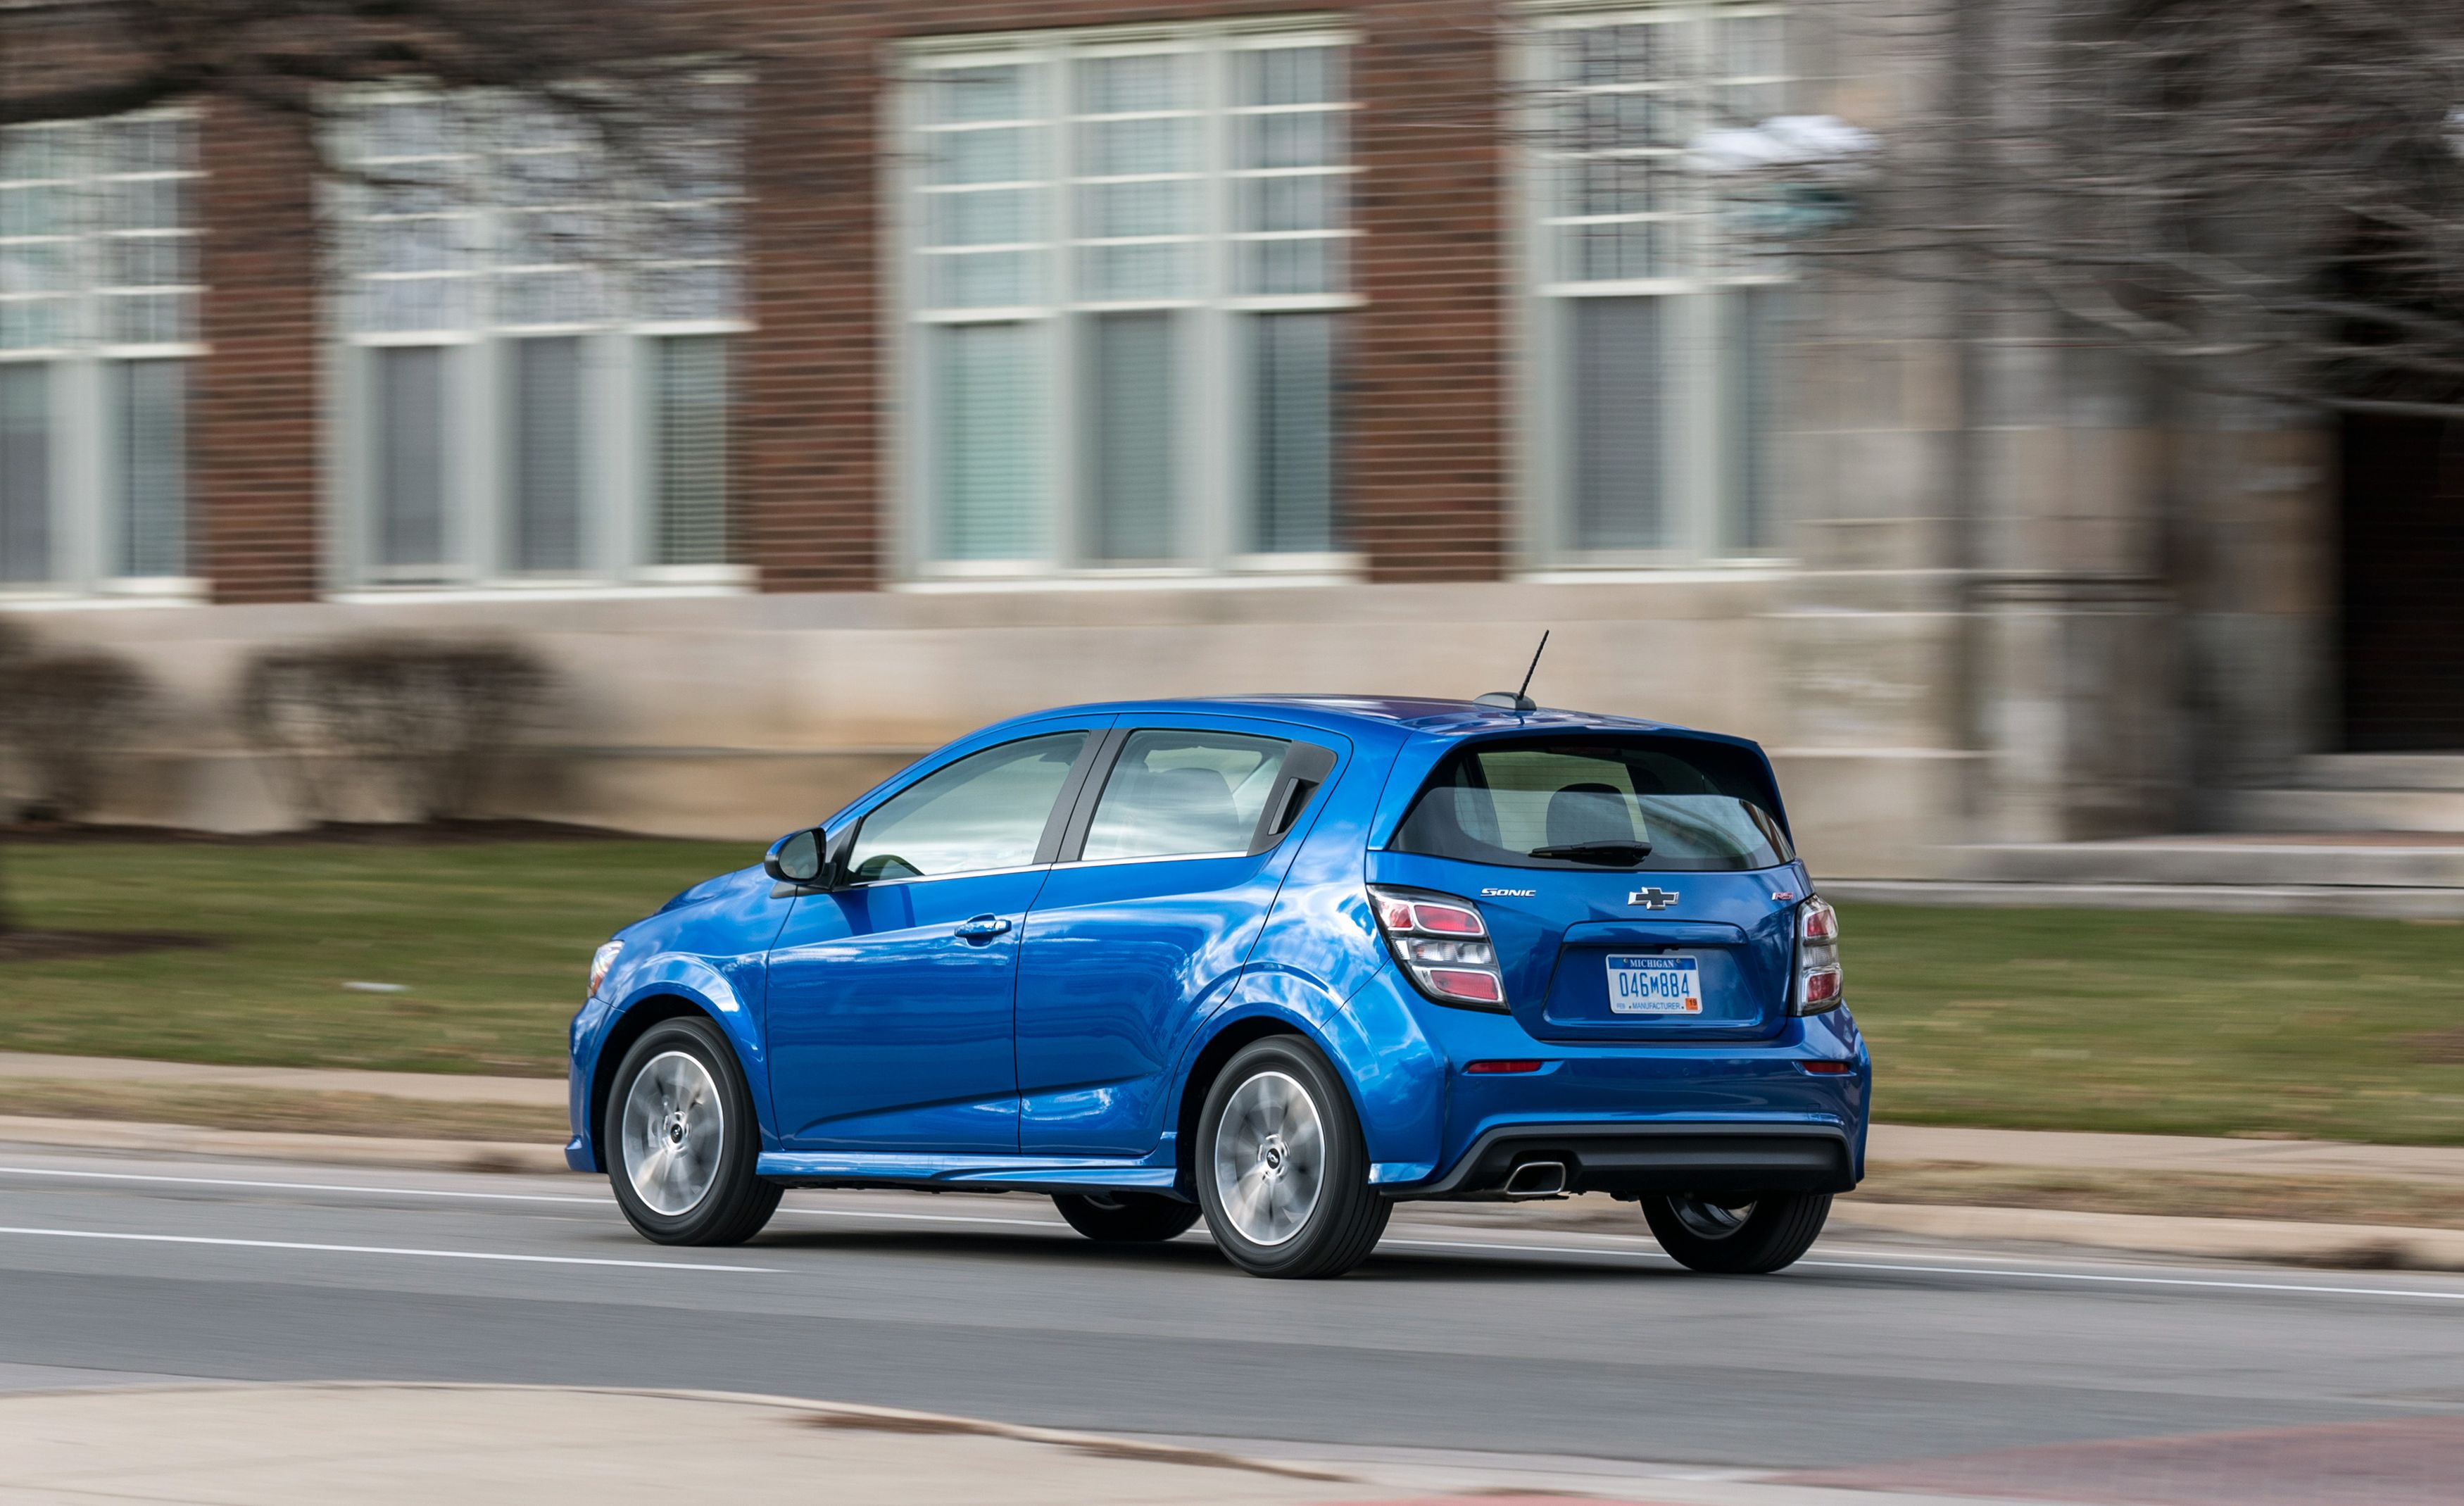 2019 Chevrolet Sonic Reviews | Chevrolet Sonic Price, Photos, and Specs | Car and Driver